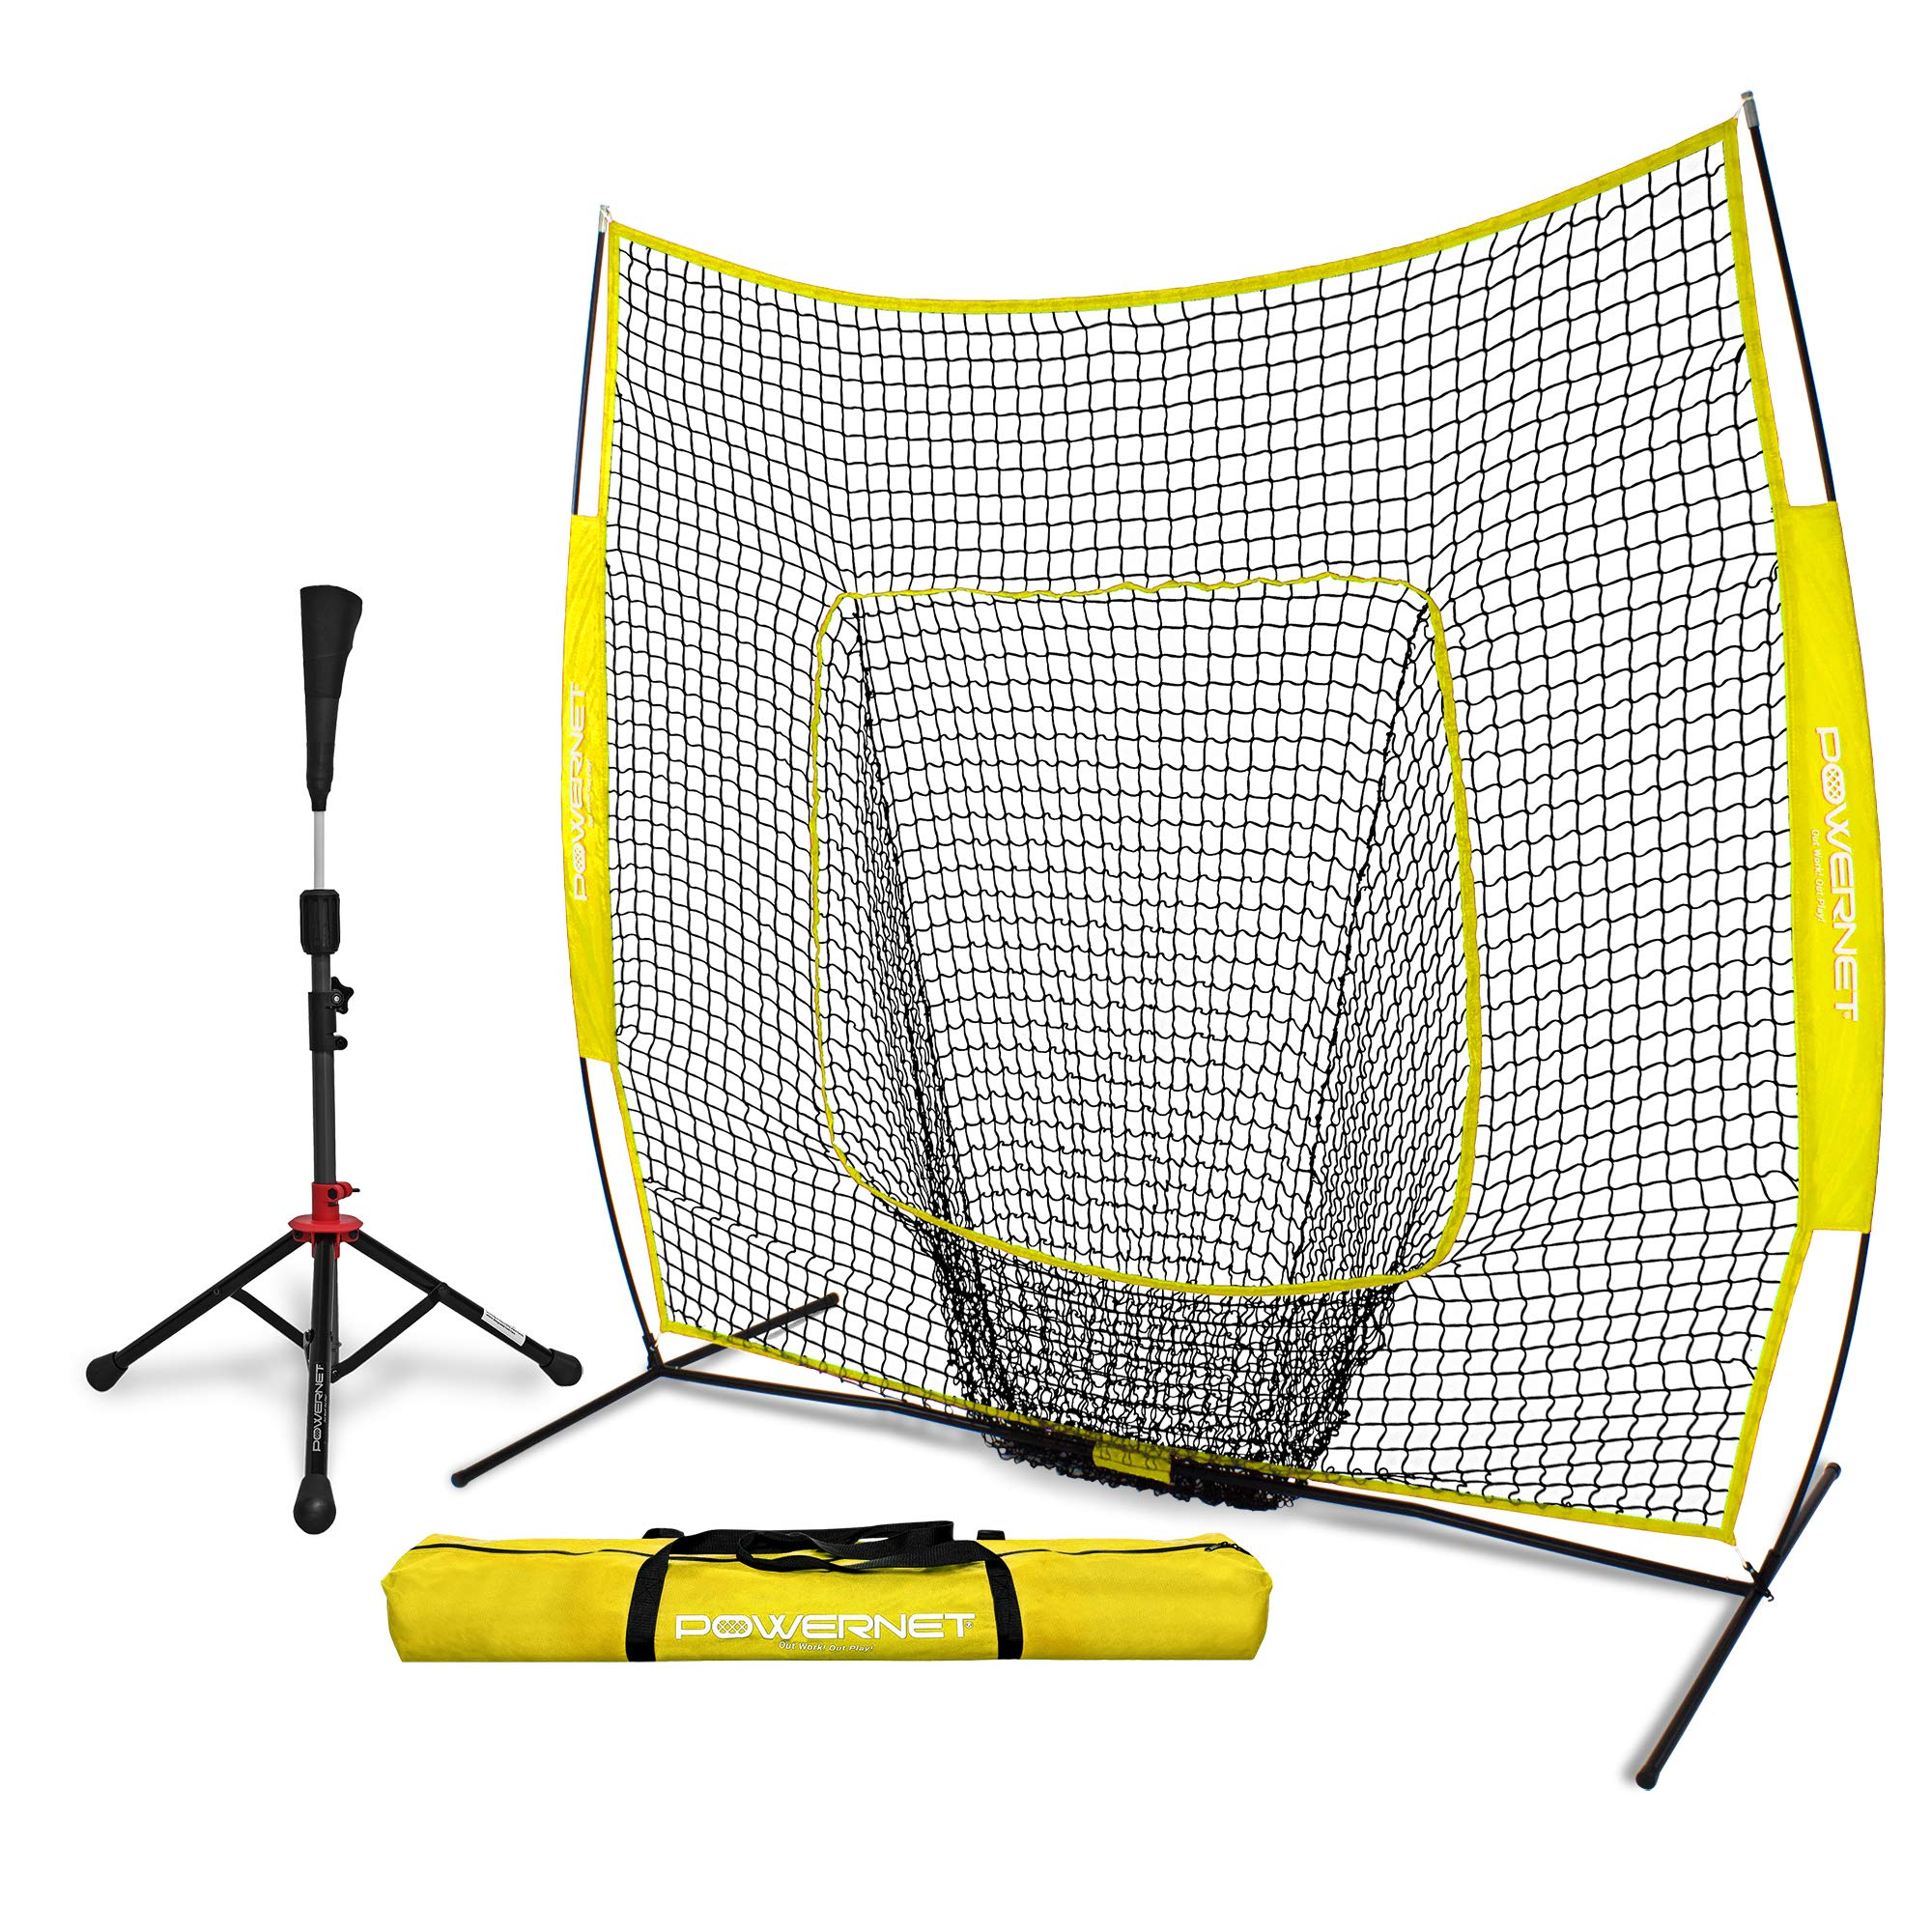 PowerNet Baseball Softball Practice Net 7x7 with Deluxe Tee (Yellow) | Practice Hitting, Pitching, Batting, Fielding | Portable, Backstop, Training Aid, Bow Frame | Training Equipment Bundle by PowerNet